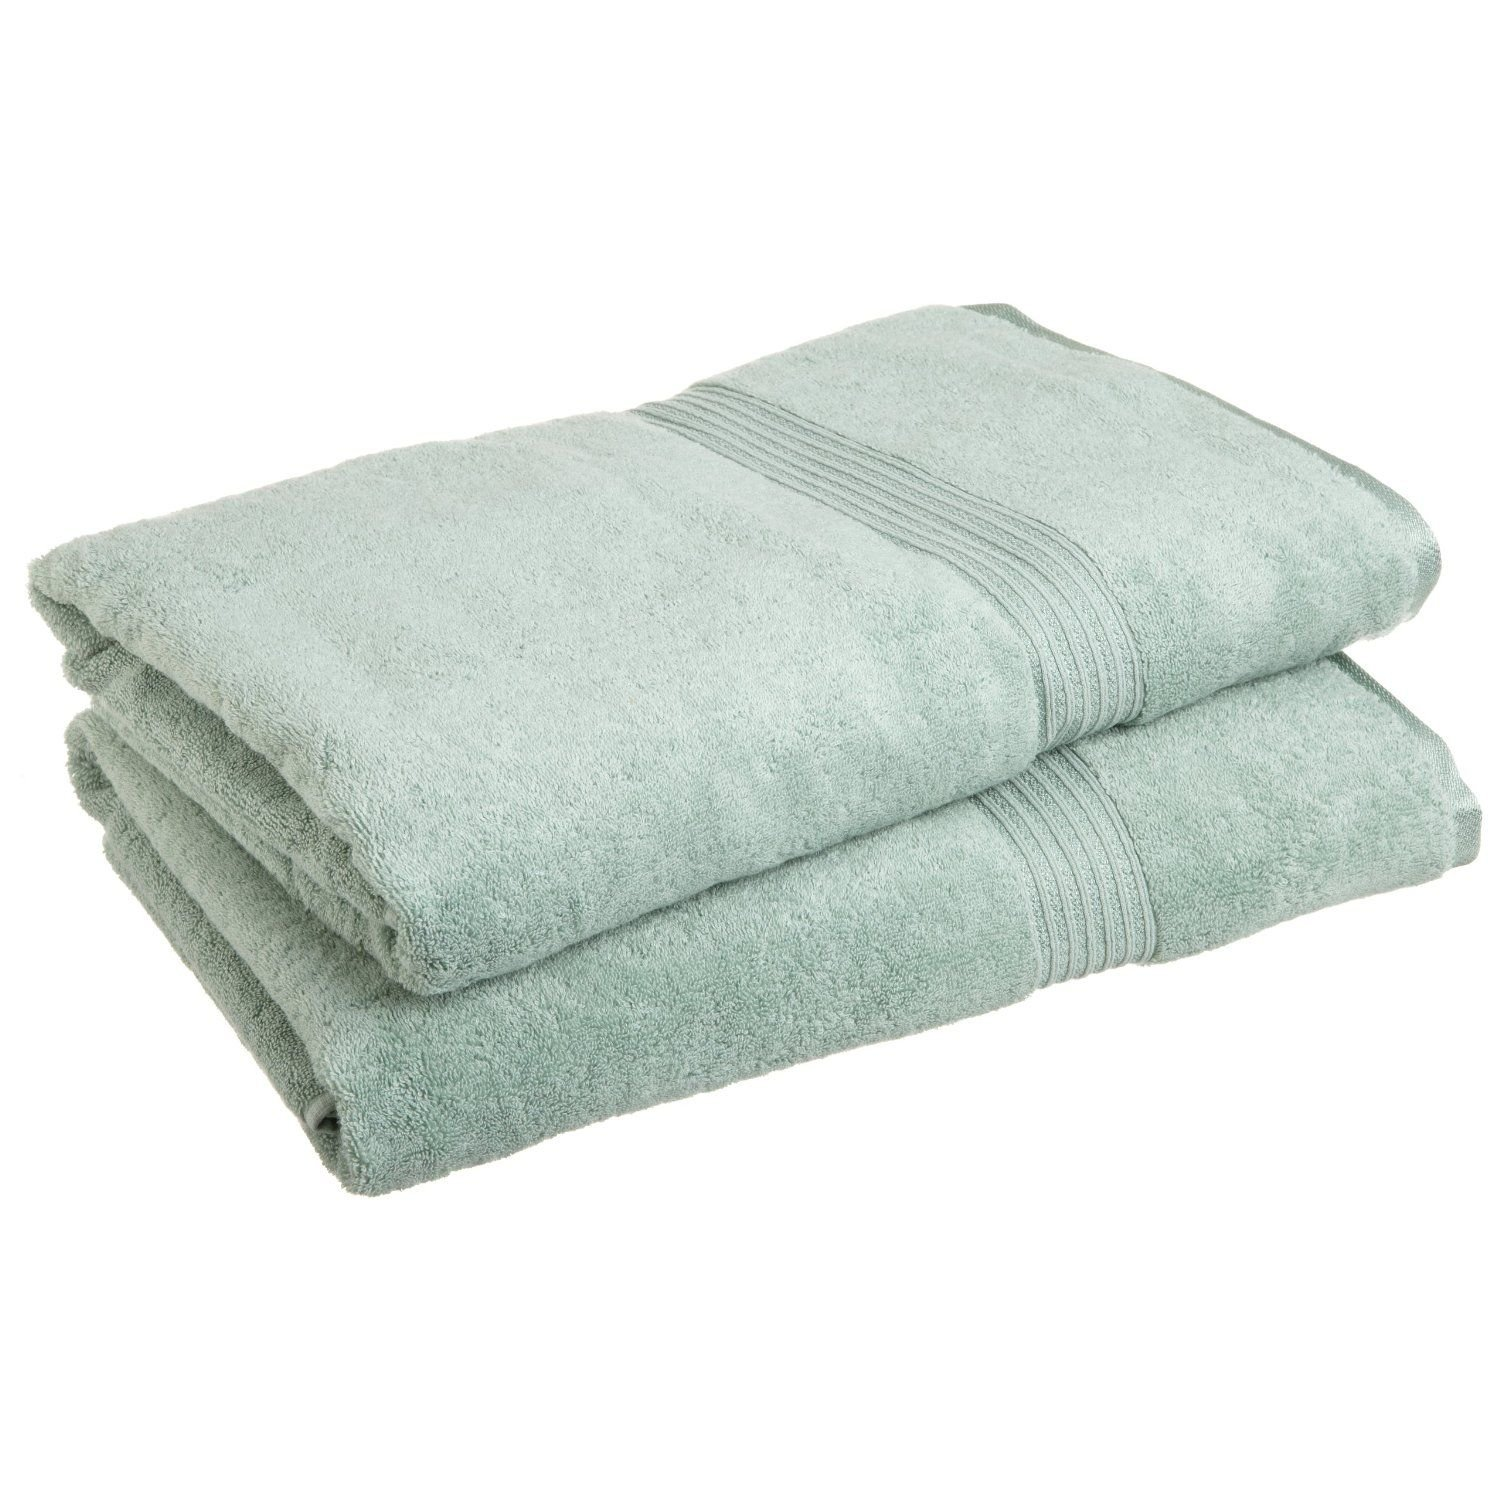 Superior Luxurious Soft Hotel & Spa Quality Oversized Bath Sheet Set of 2, Made of 100% Premium Long-Staple Combed Cotton - Sage, 34'' x 68'' each